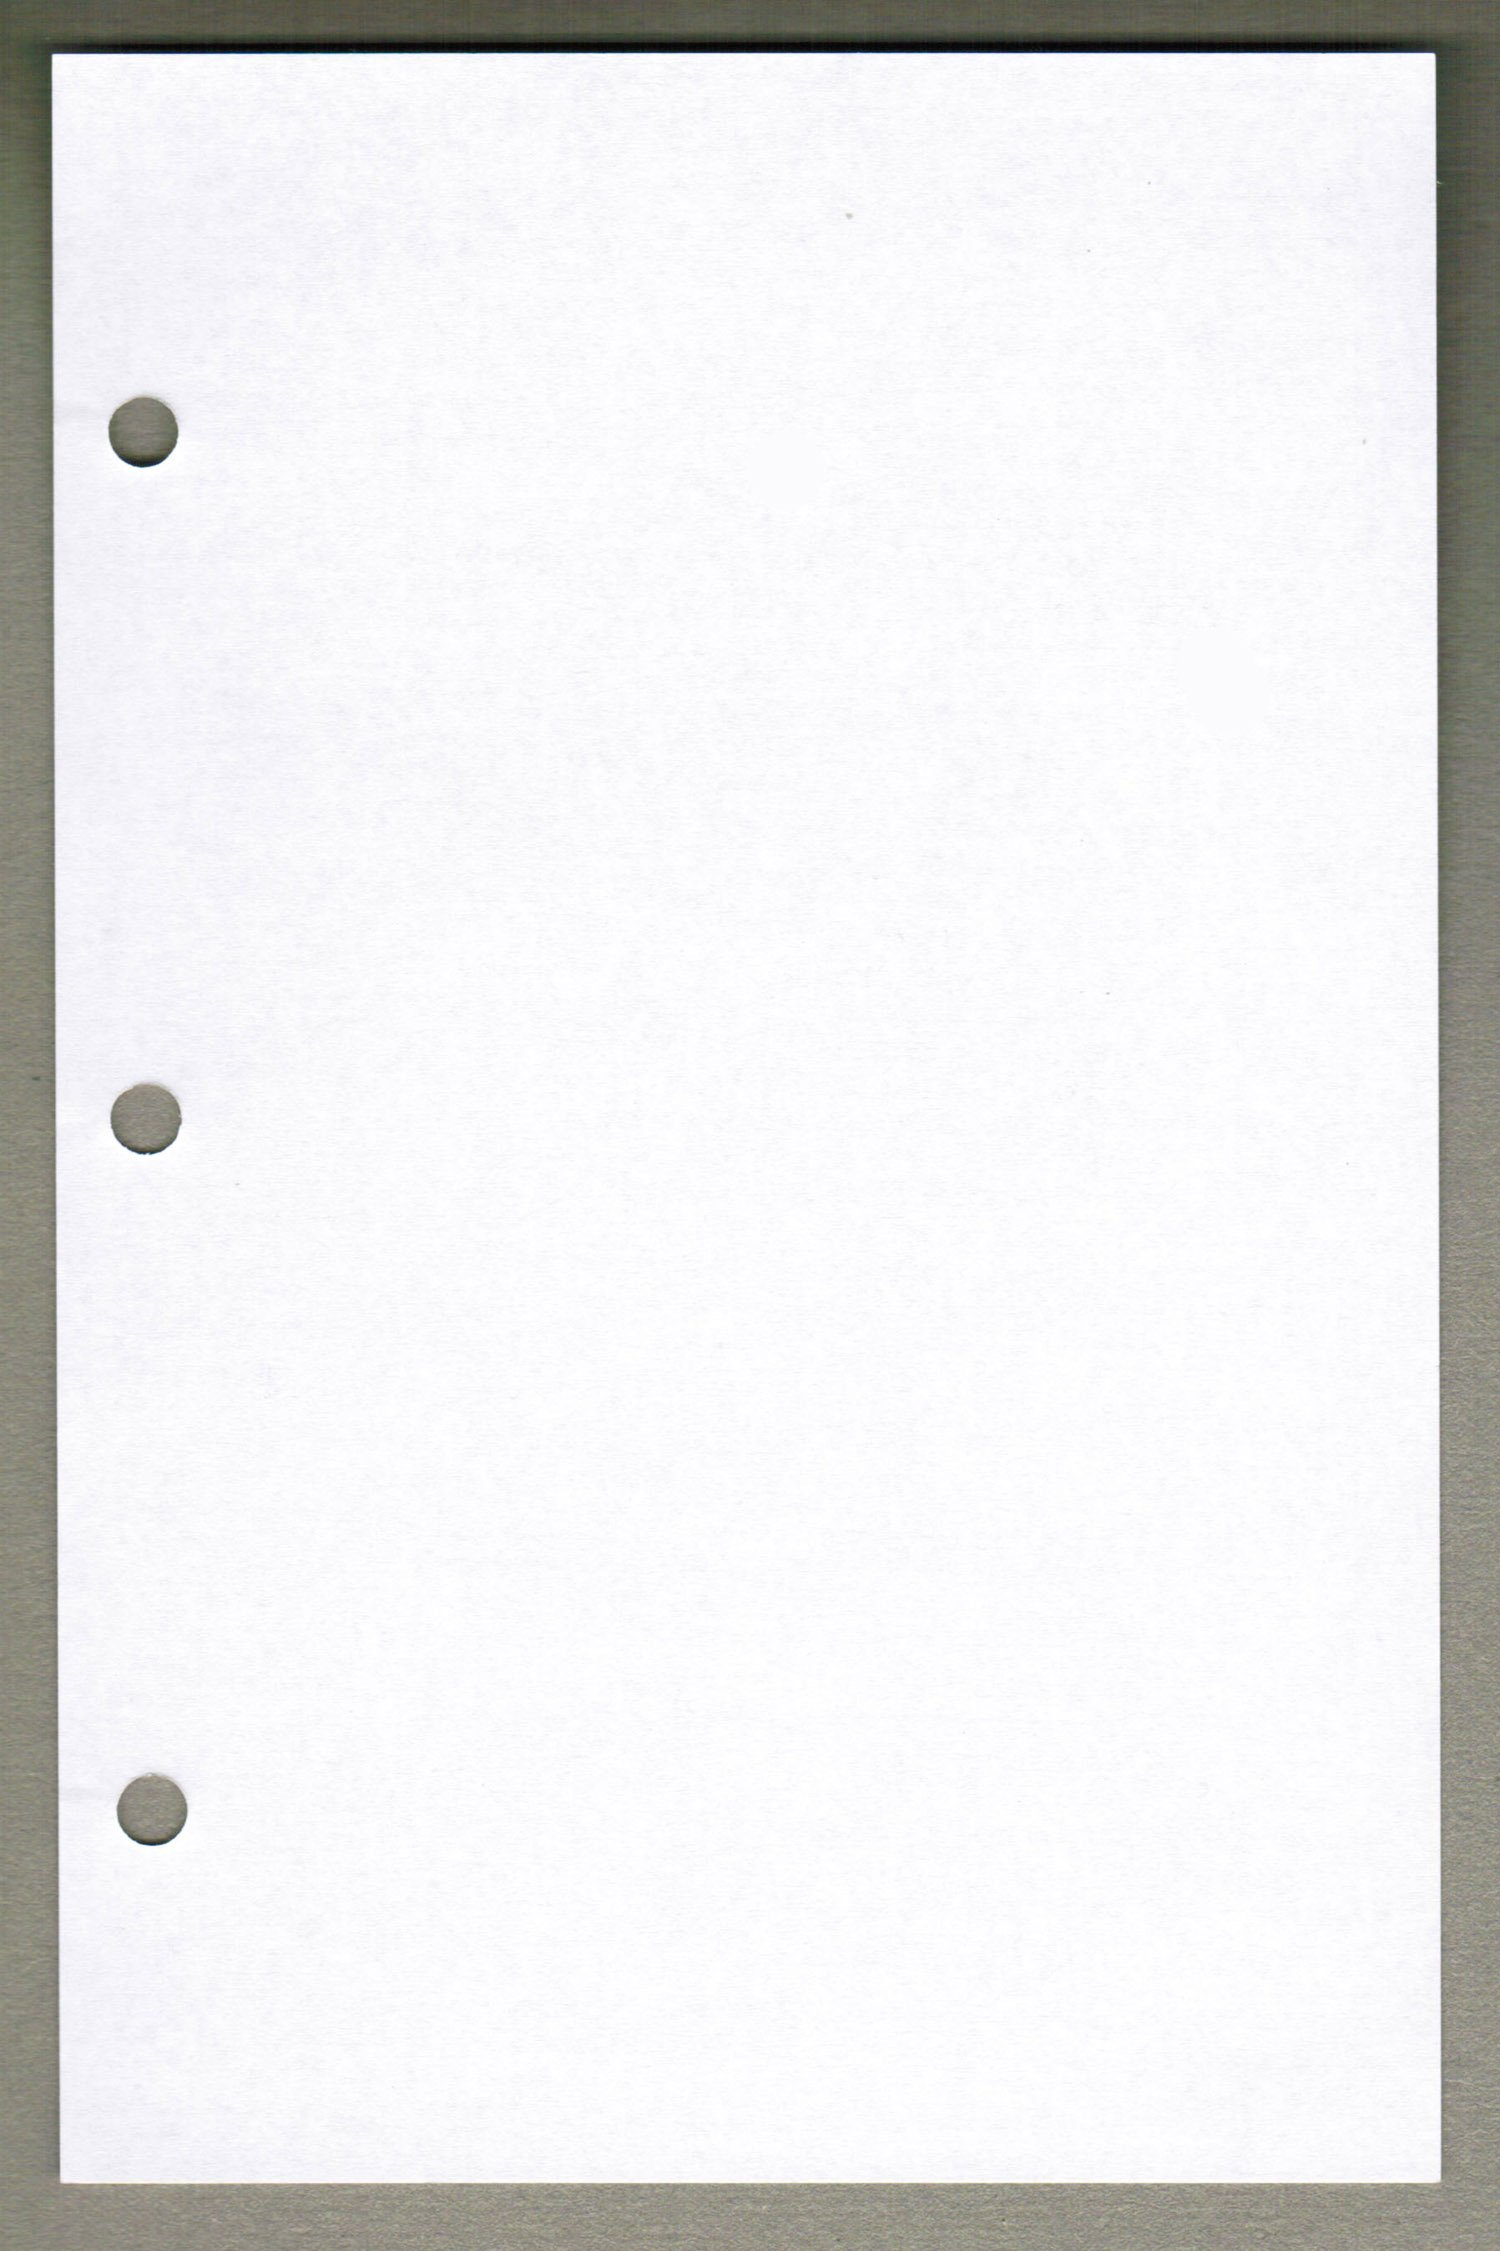 Linco Unruled Filler Paper, 5.5'' x 8.5'', White, 3-holes, 24lb, 100 Sheets